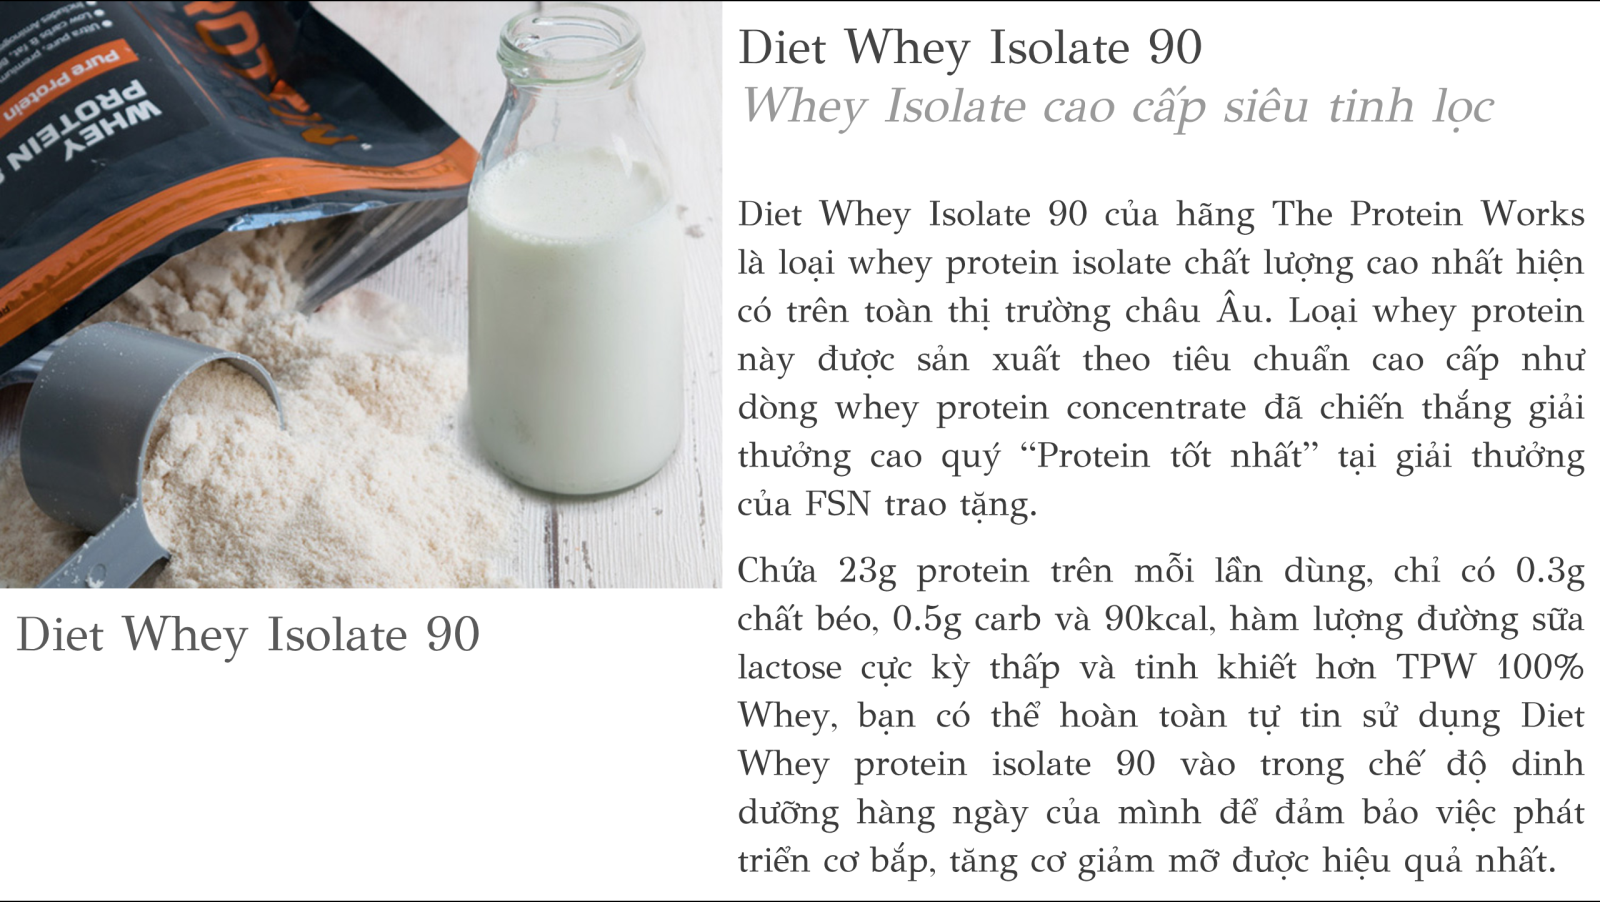 The Protein Works (TPW) - Diet Whey Isolate 90 - Chocolate Silk (Socola nhẹ) 2kg